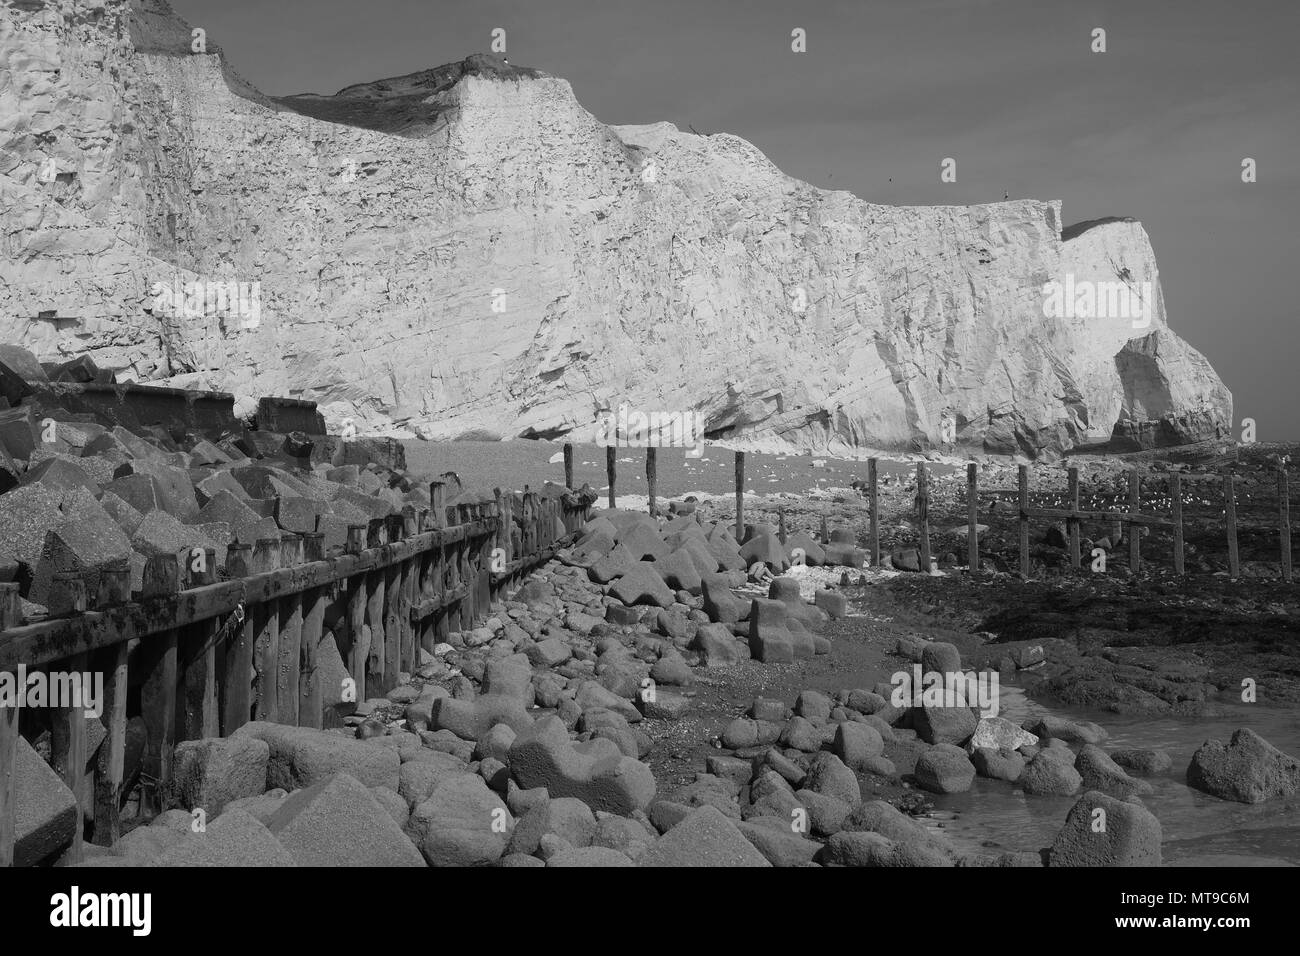 Seaford Head Cliff - Stock Image